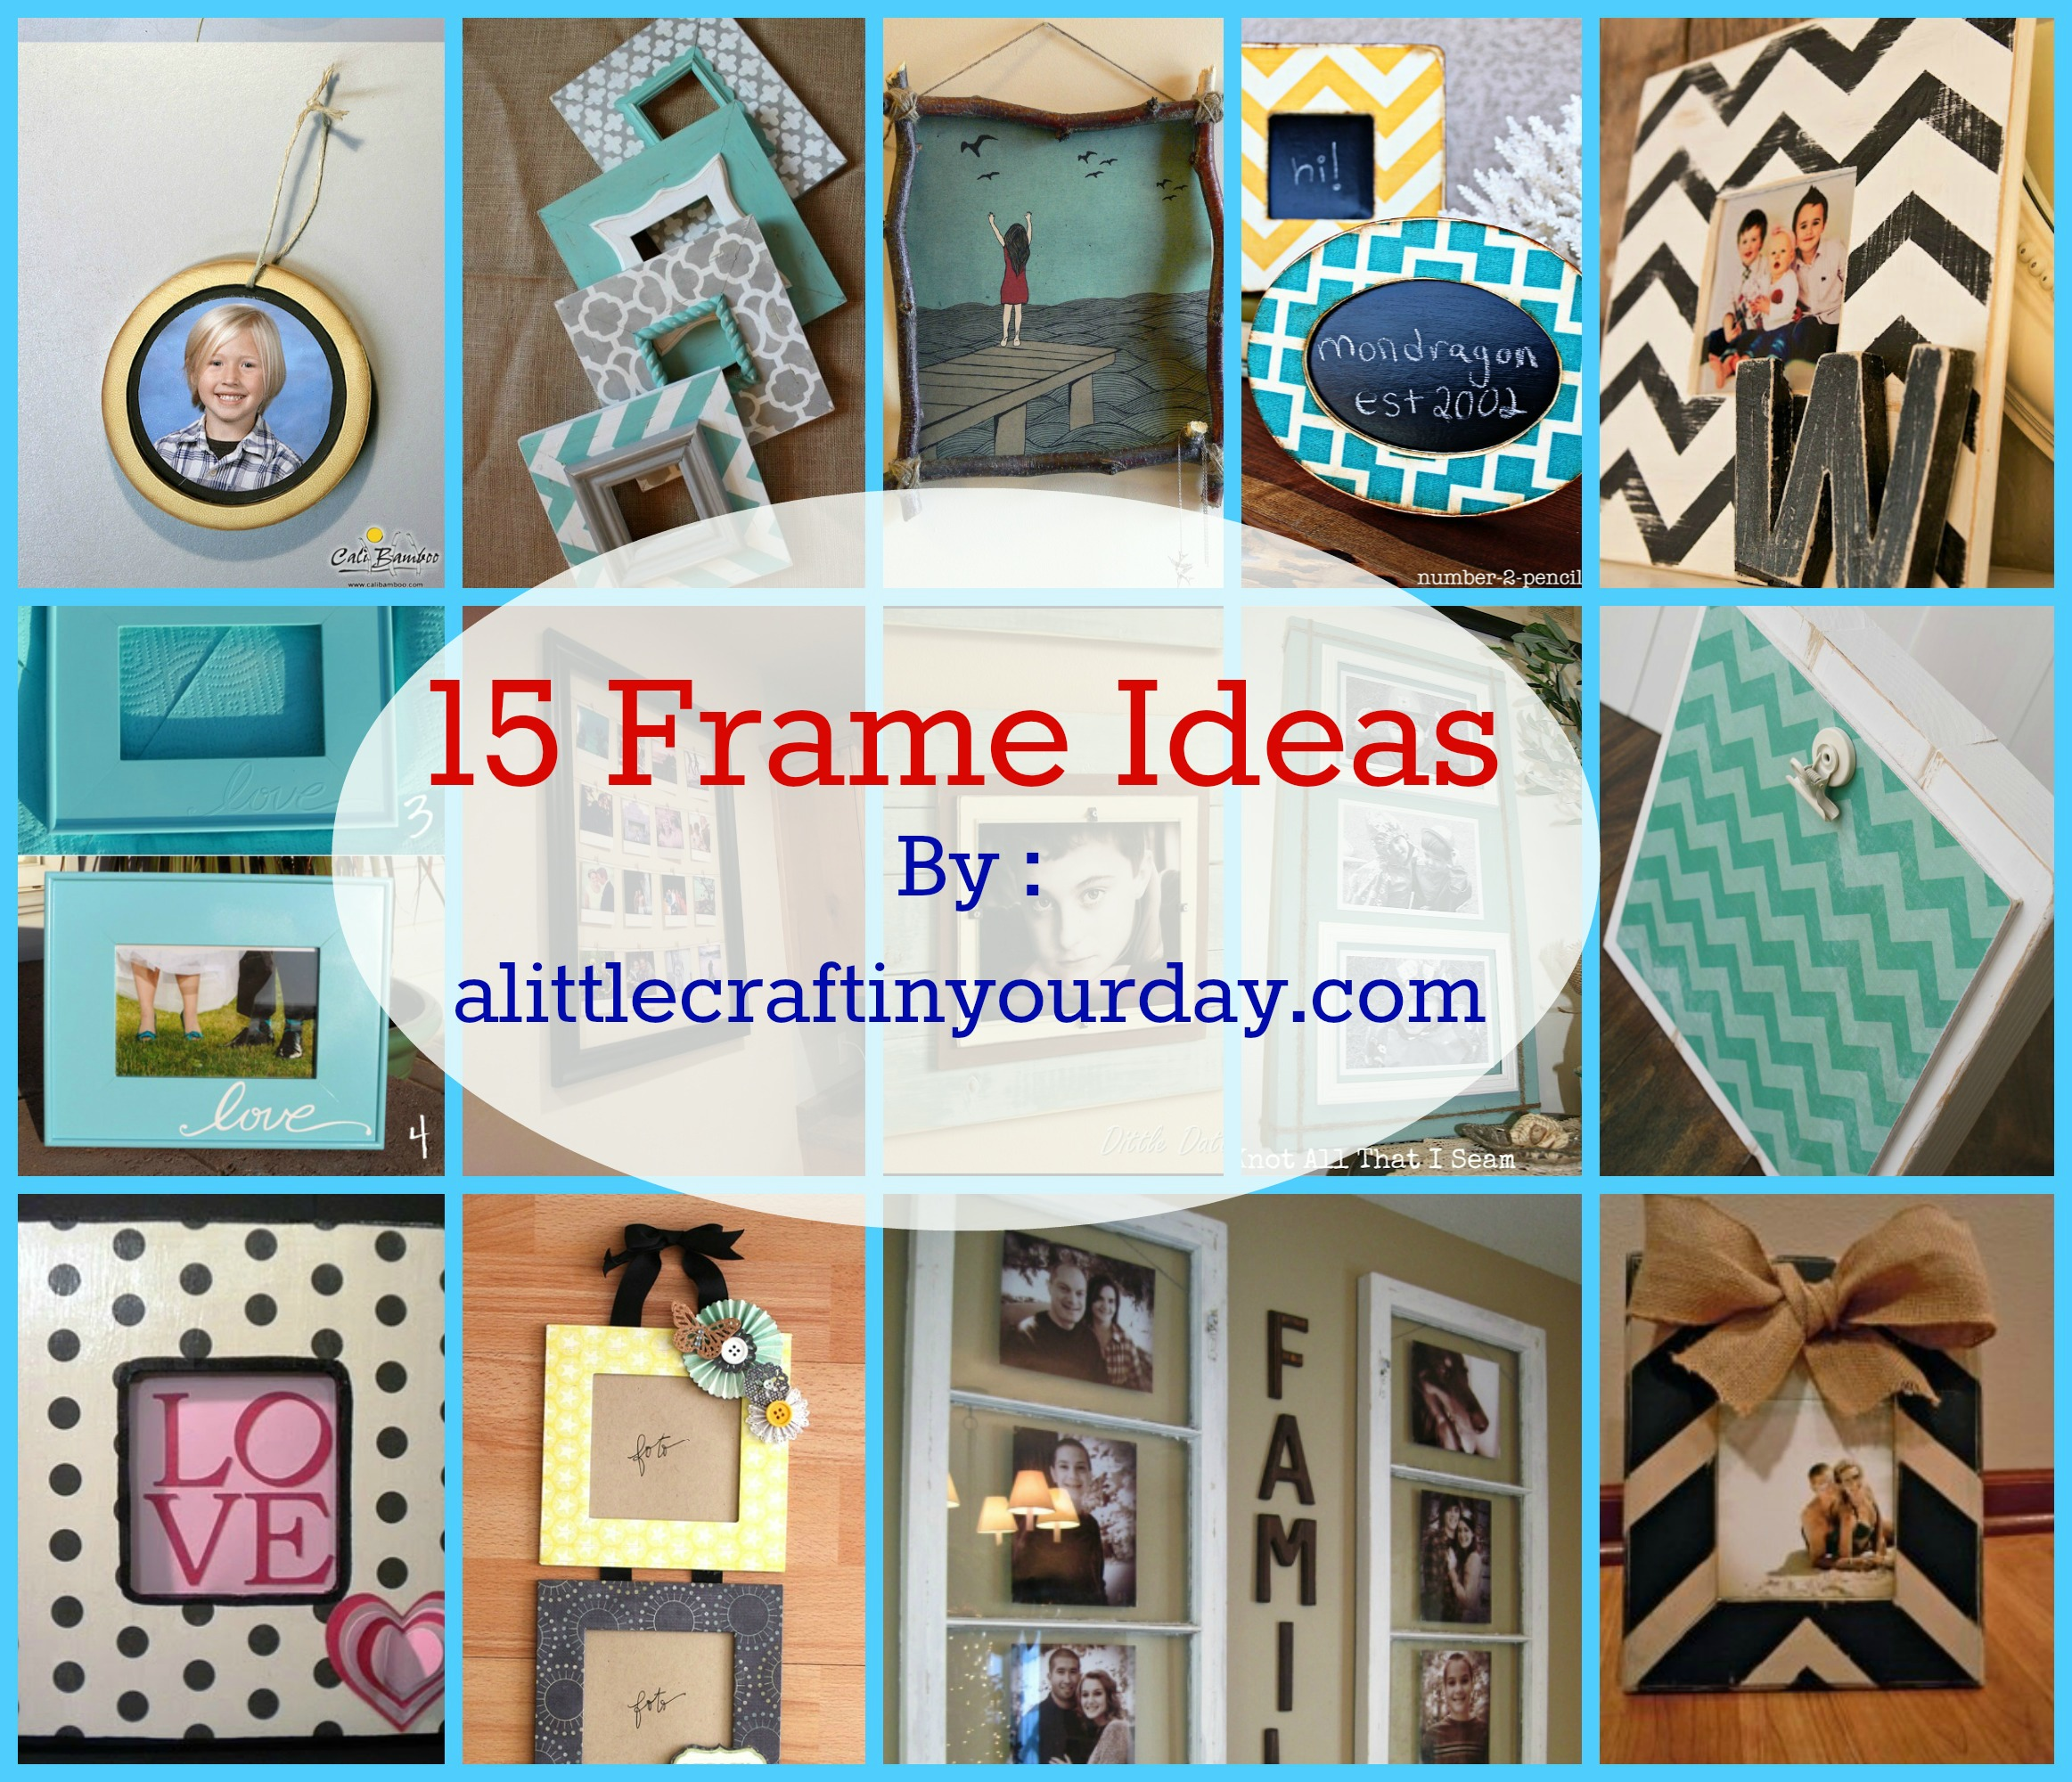 14 photo frame ideas a little craft in your day - Designs in glasses for house decoration ...